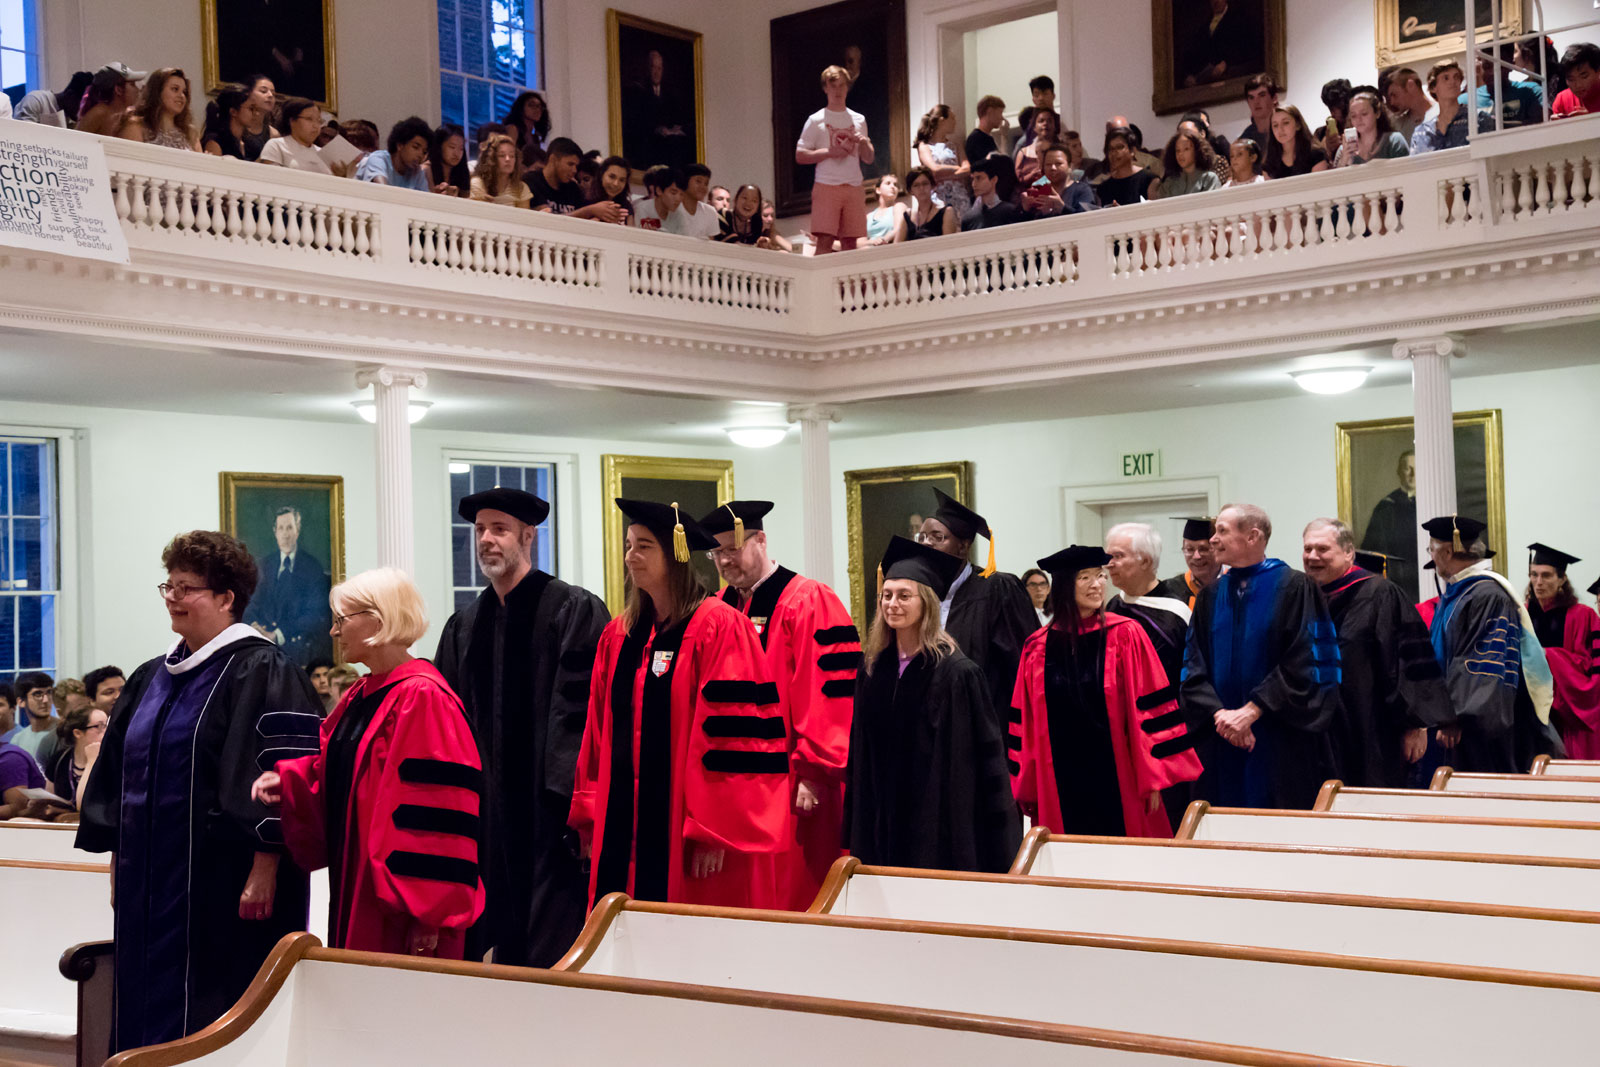 Faculty process into Johnson Chapel, wearing regalia